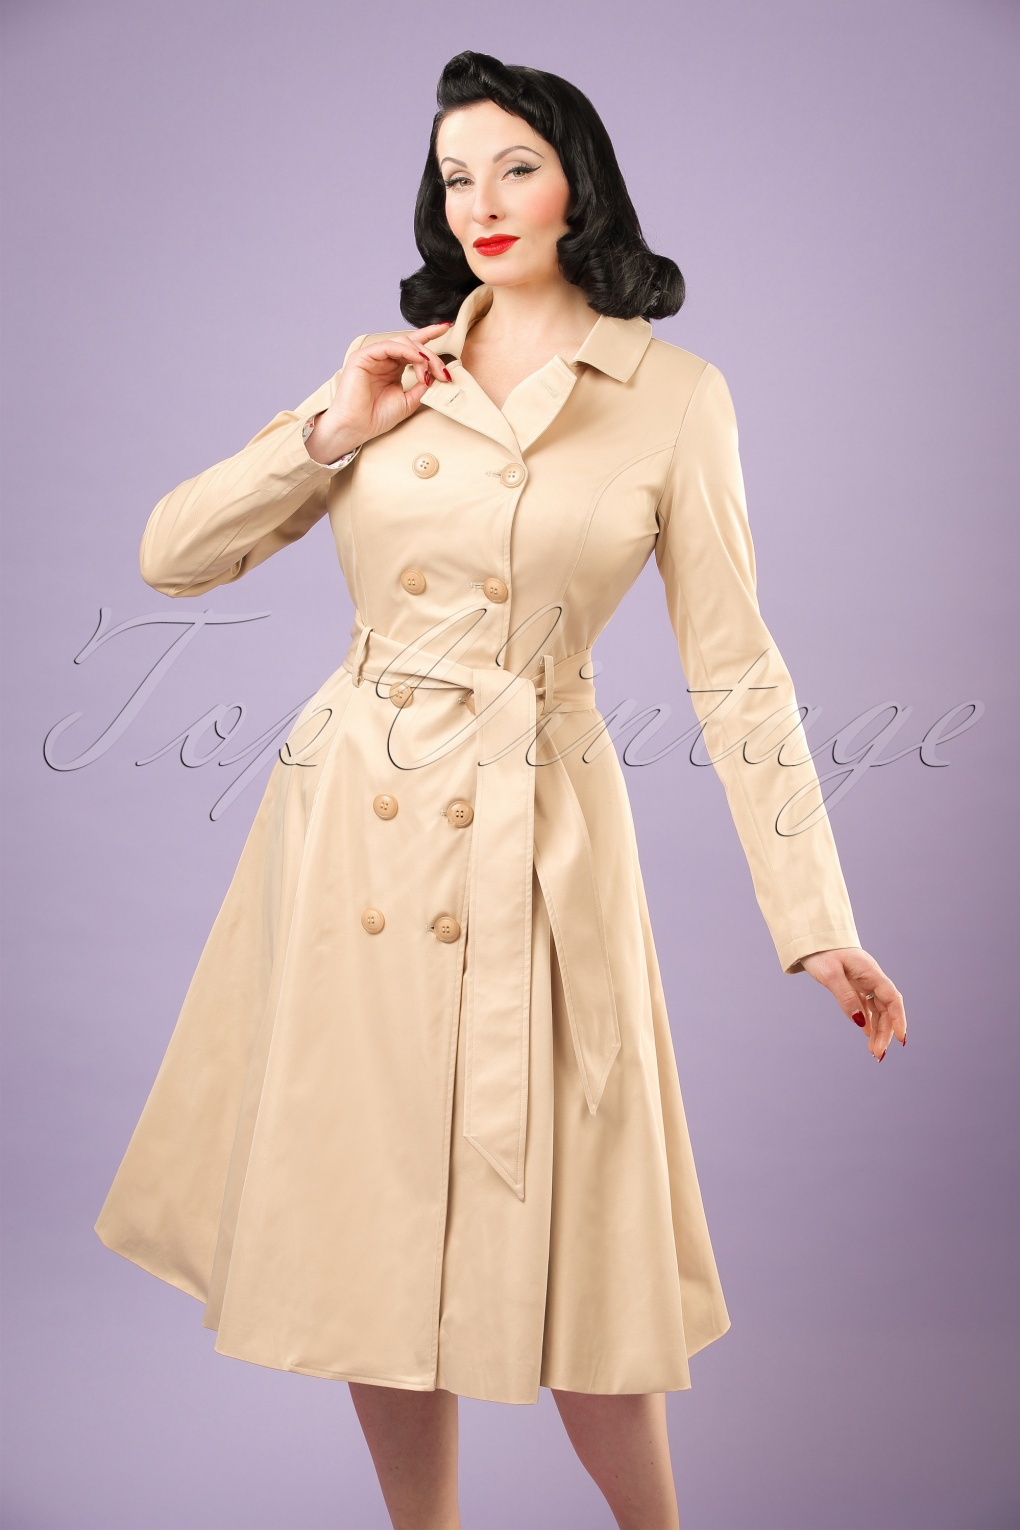 1950s Jackets, Coats, Bolero | Swing, Pin Up, Rockabilly 40s Korrina Swing Trench Coat in Beige £128.62 AT vintagedancer.com